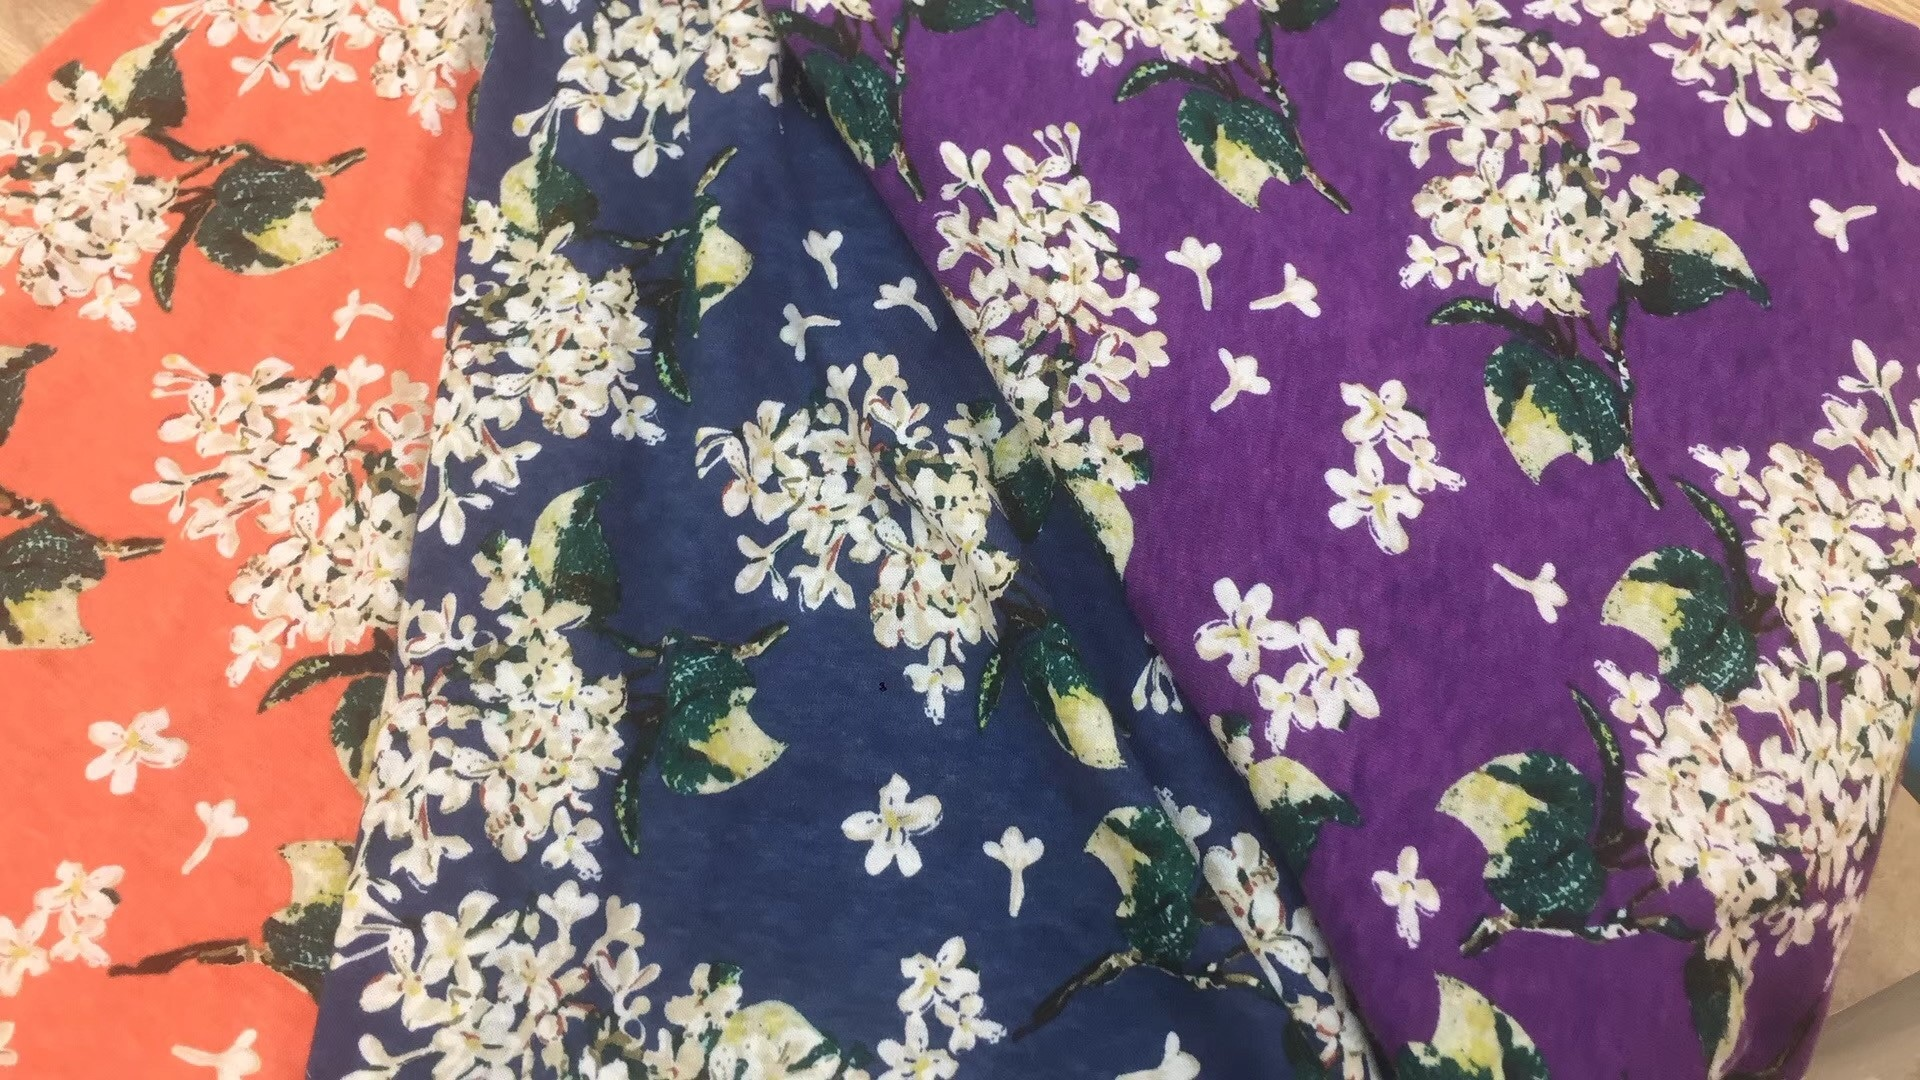 Digital Fabric Printing Service Business In Guangzhou And China